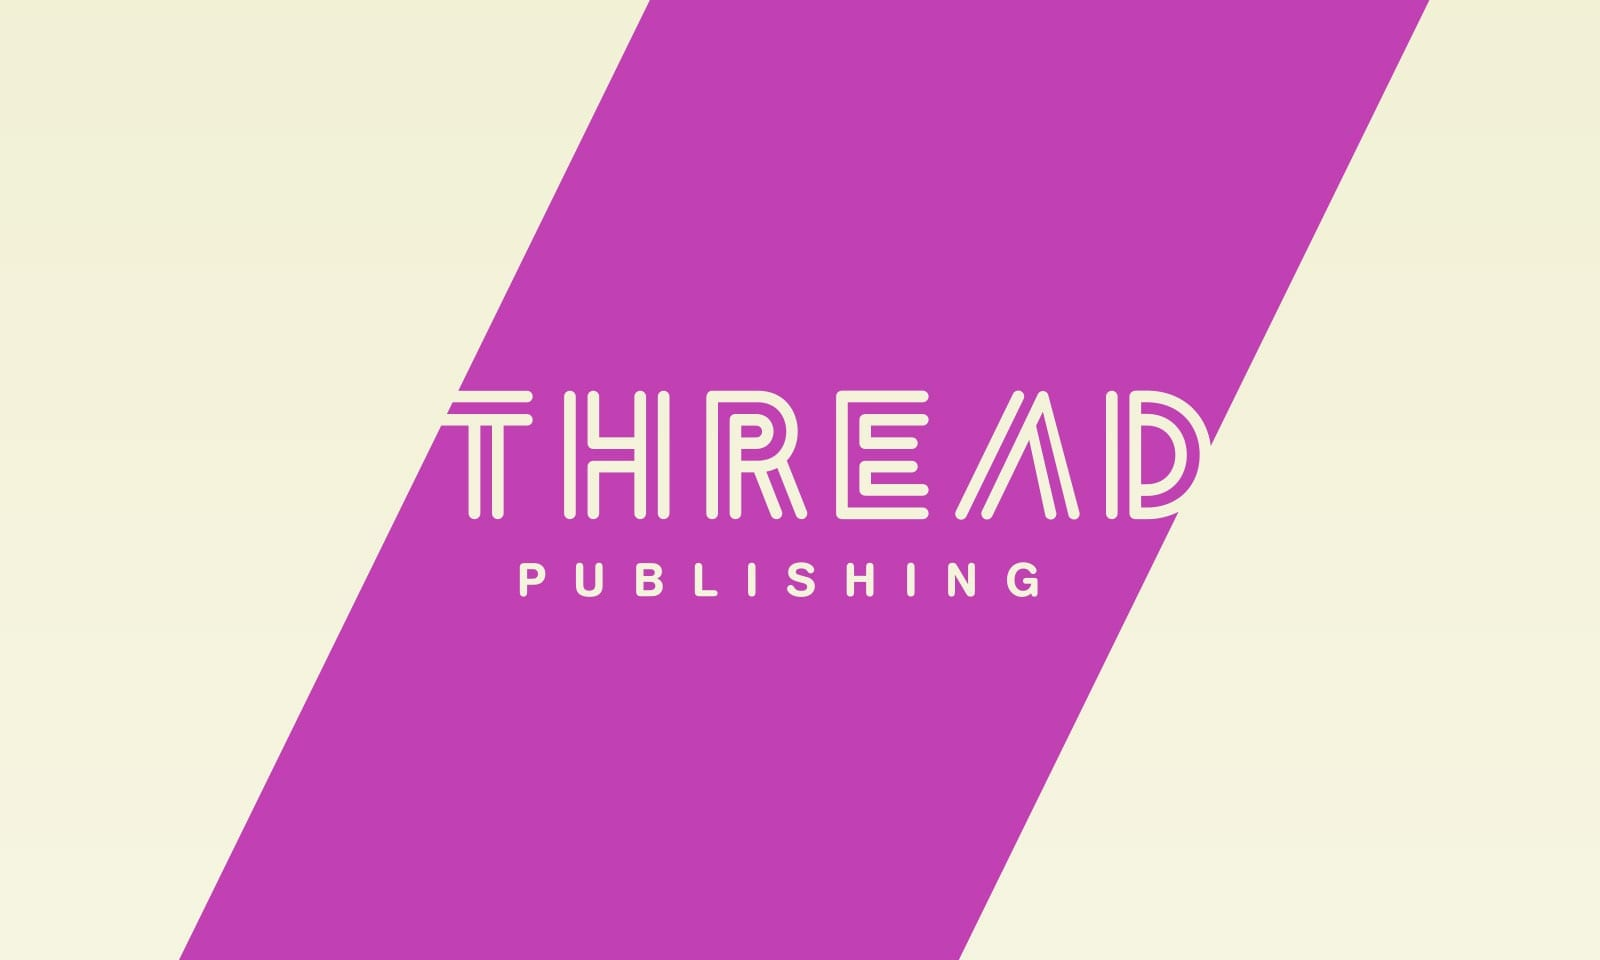 Brand promise sydney, Thread Publishing masterbrand design for the socially responsible publisher.